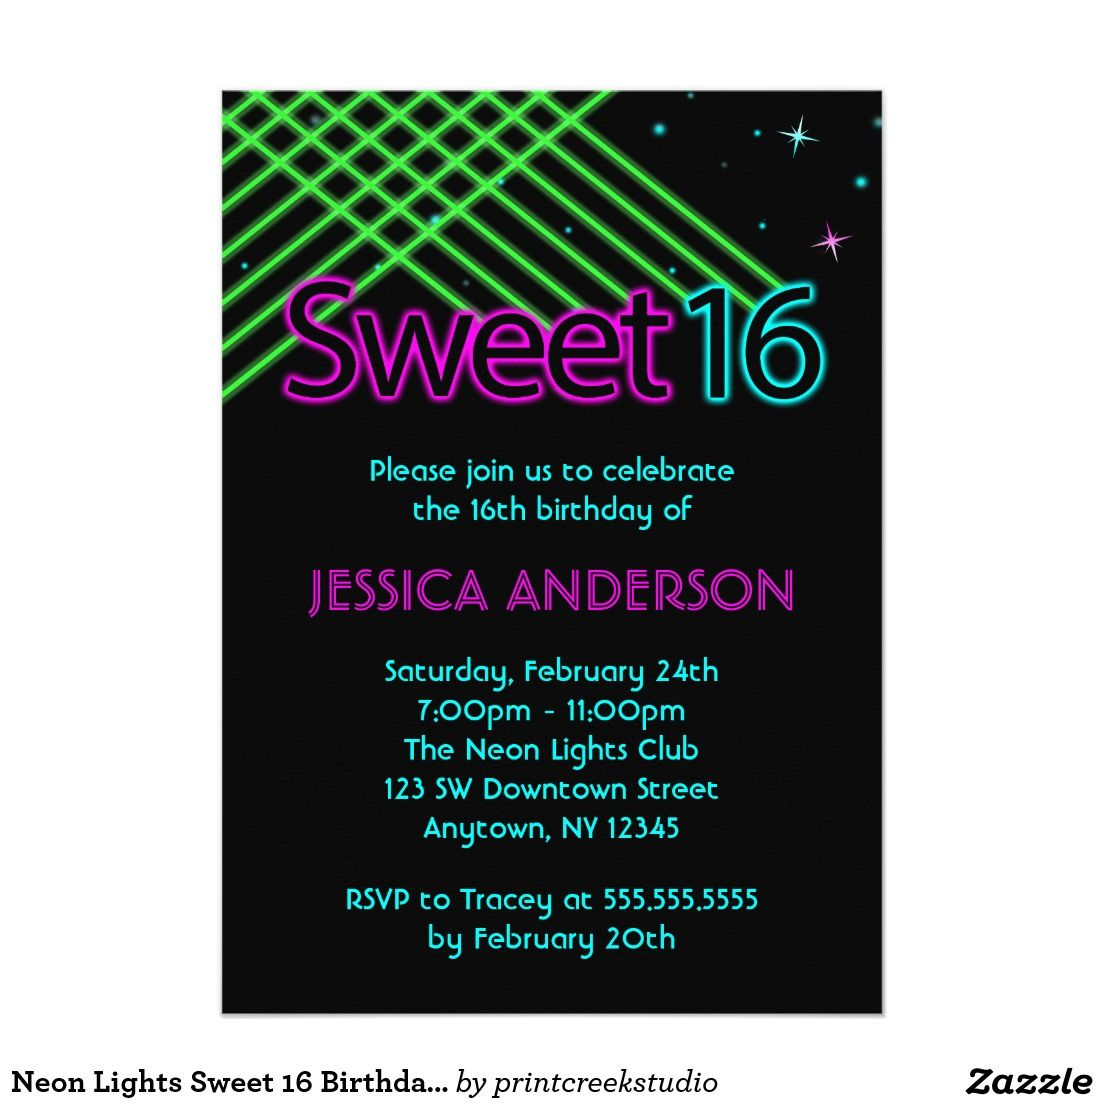 Neon lights Sweet 16 birthday party invitations. A fun 80\'s themed ...